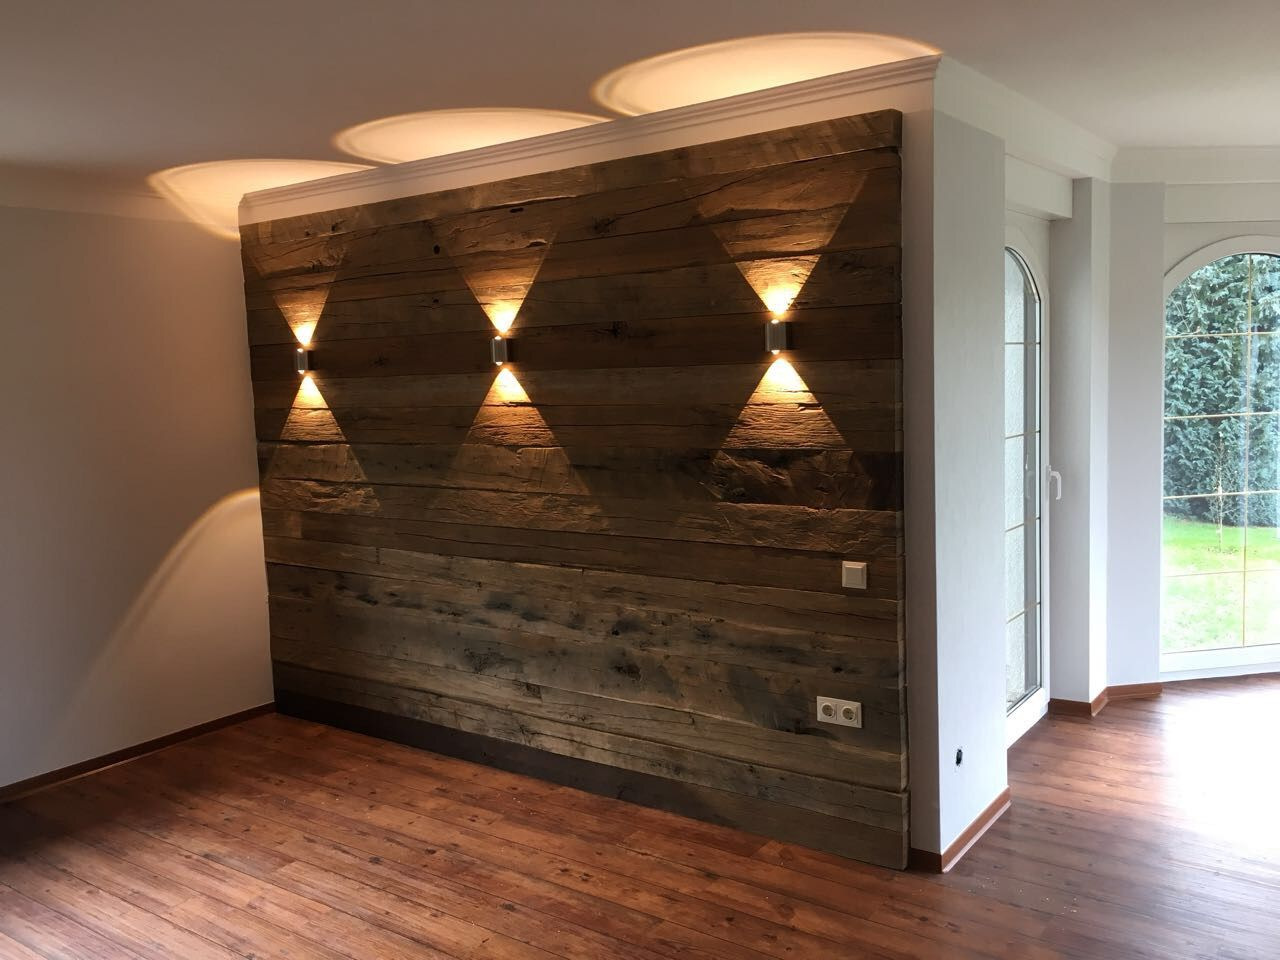 Küche Altholz Wand Altholz Wandverkleidung Bs Holzdesign Tv In 2019